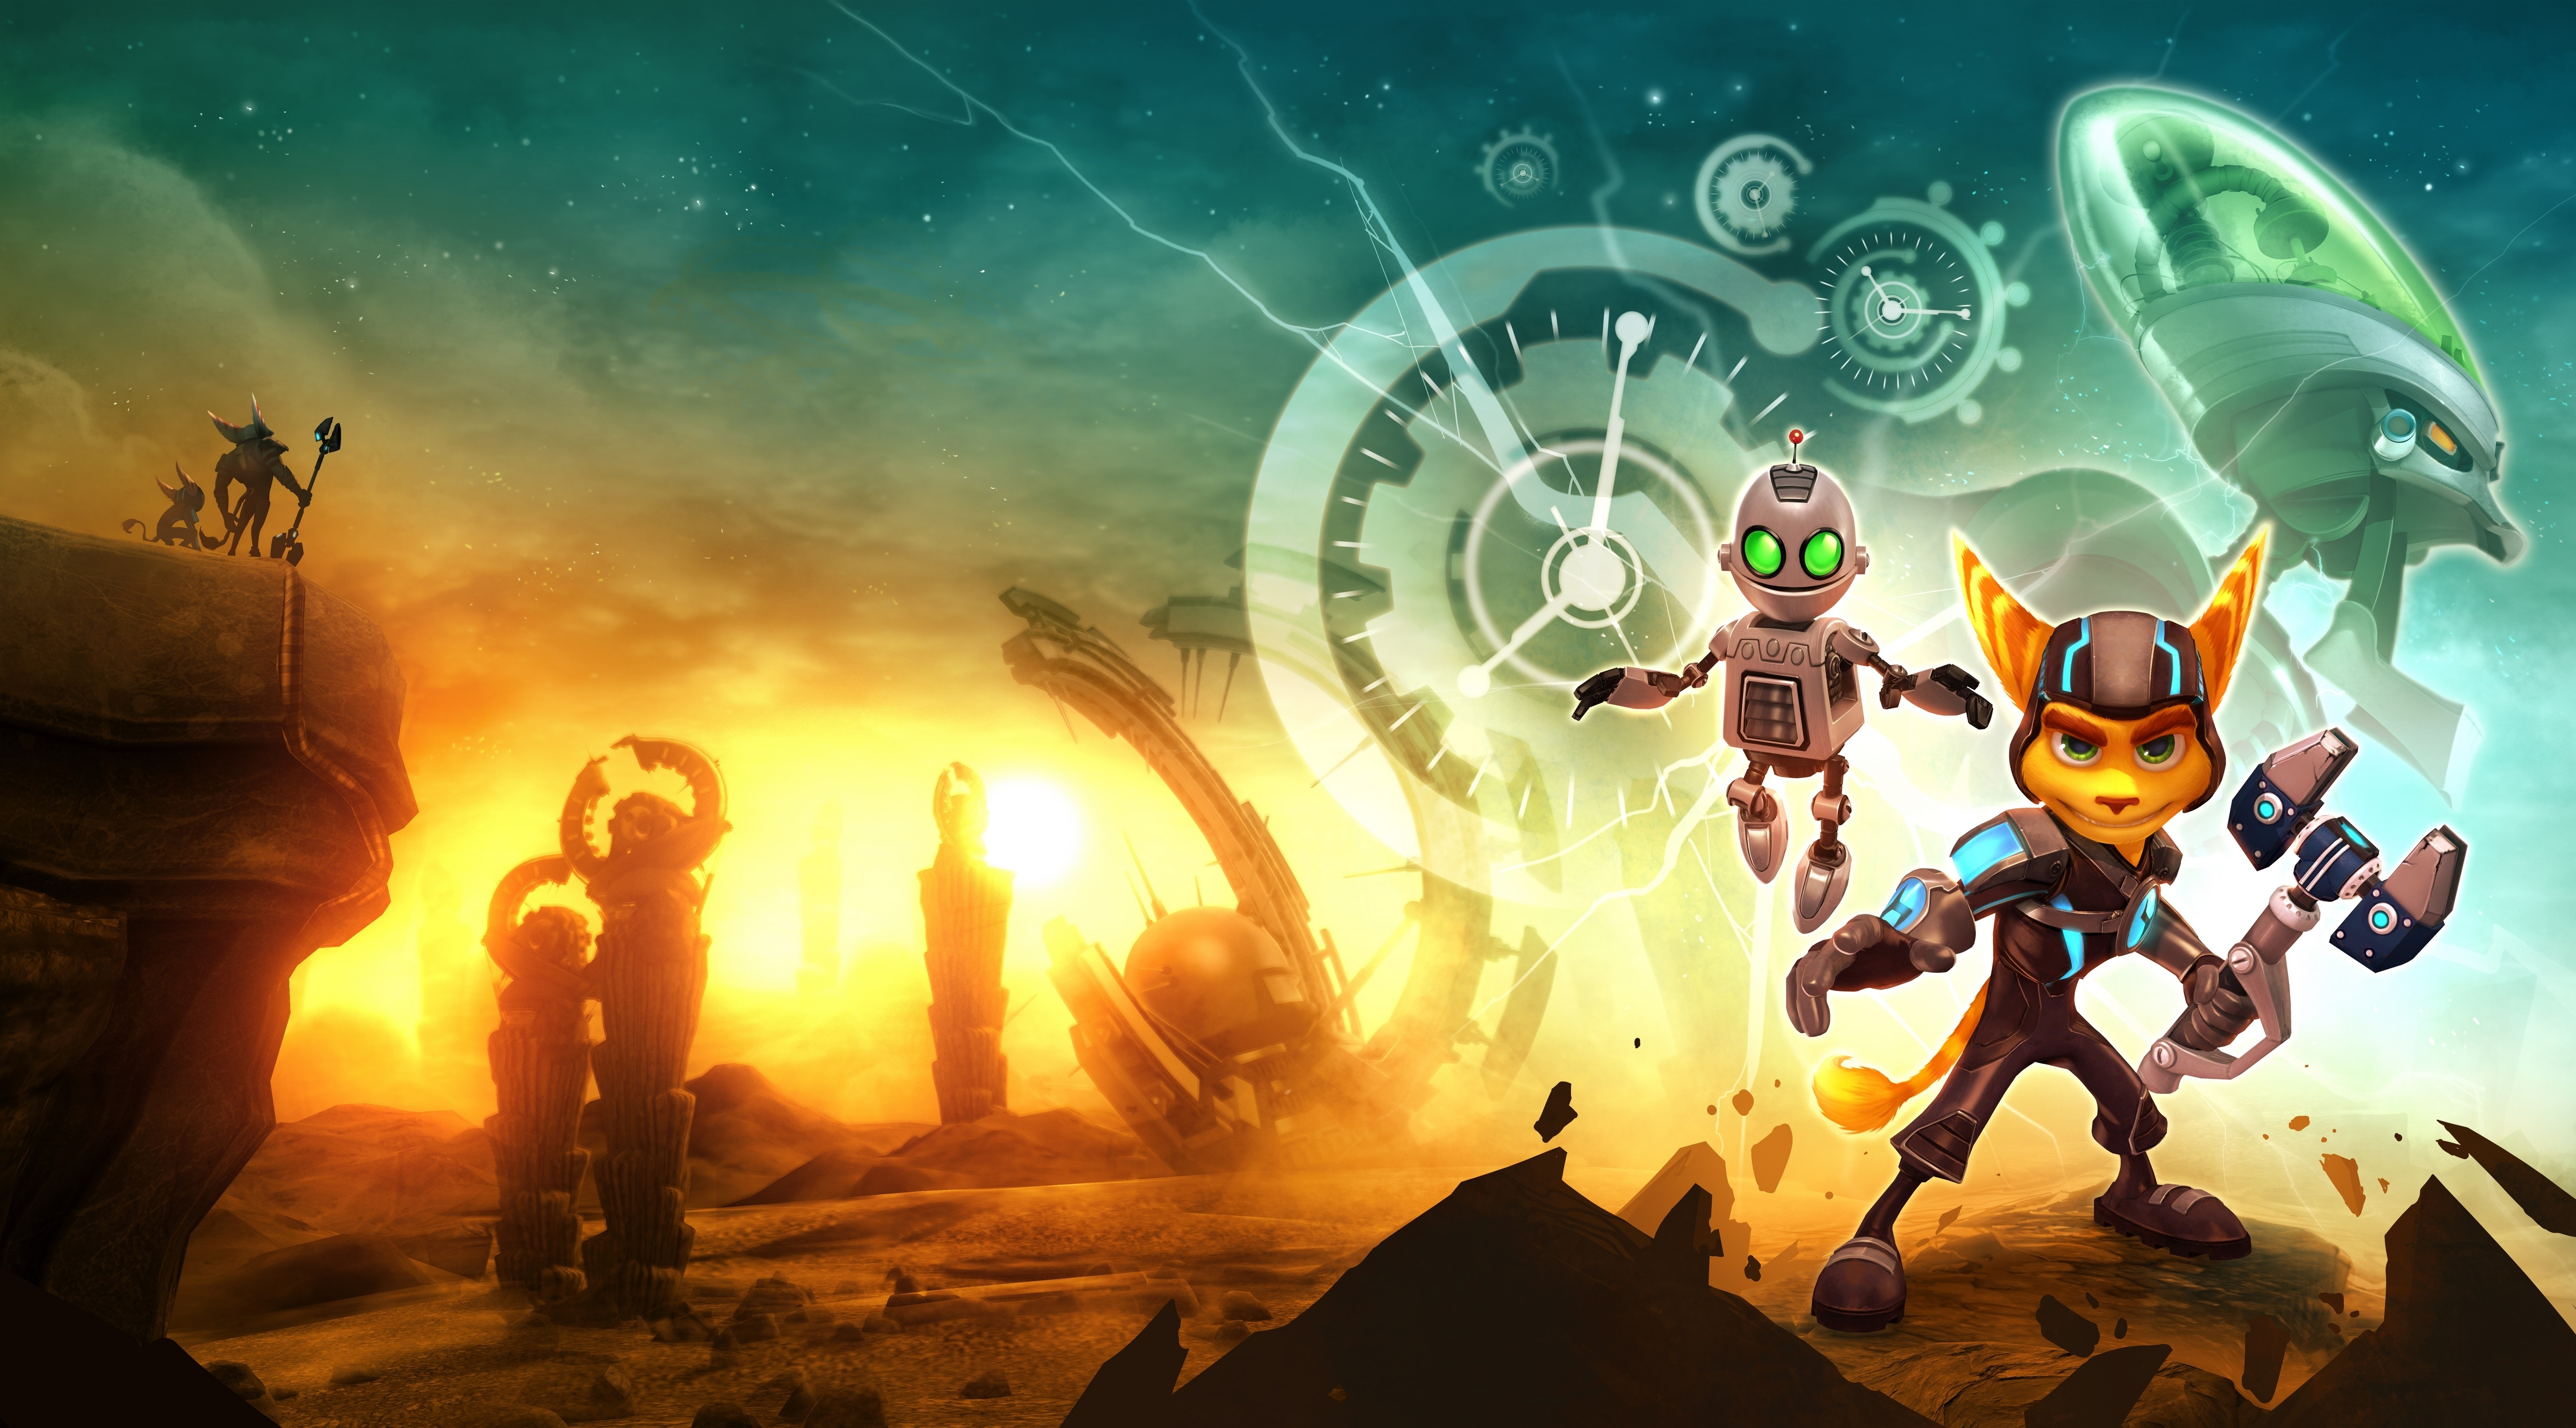 5 ratchet & clank future: a crack in time fonds d'écran hd | arrière